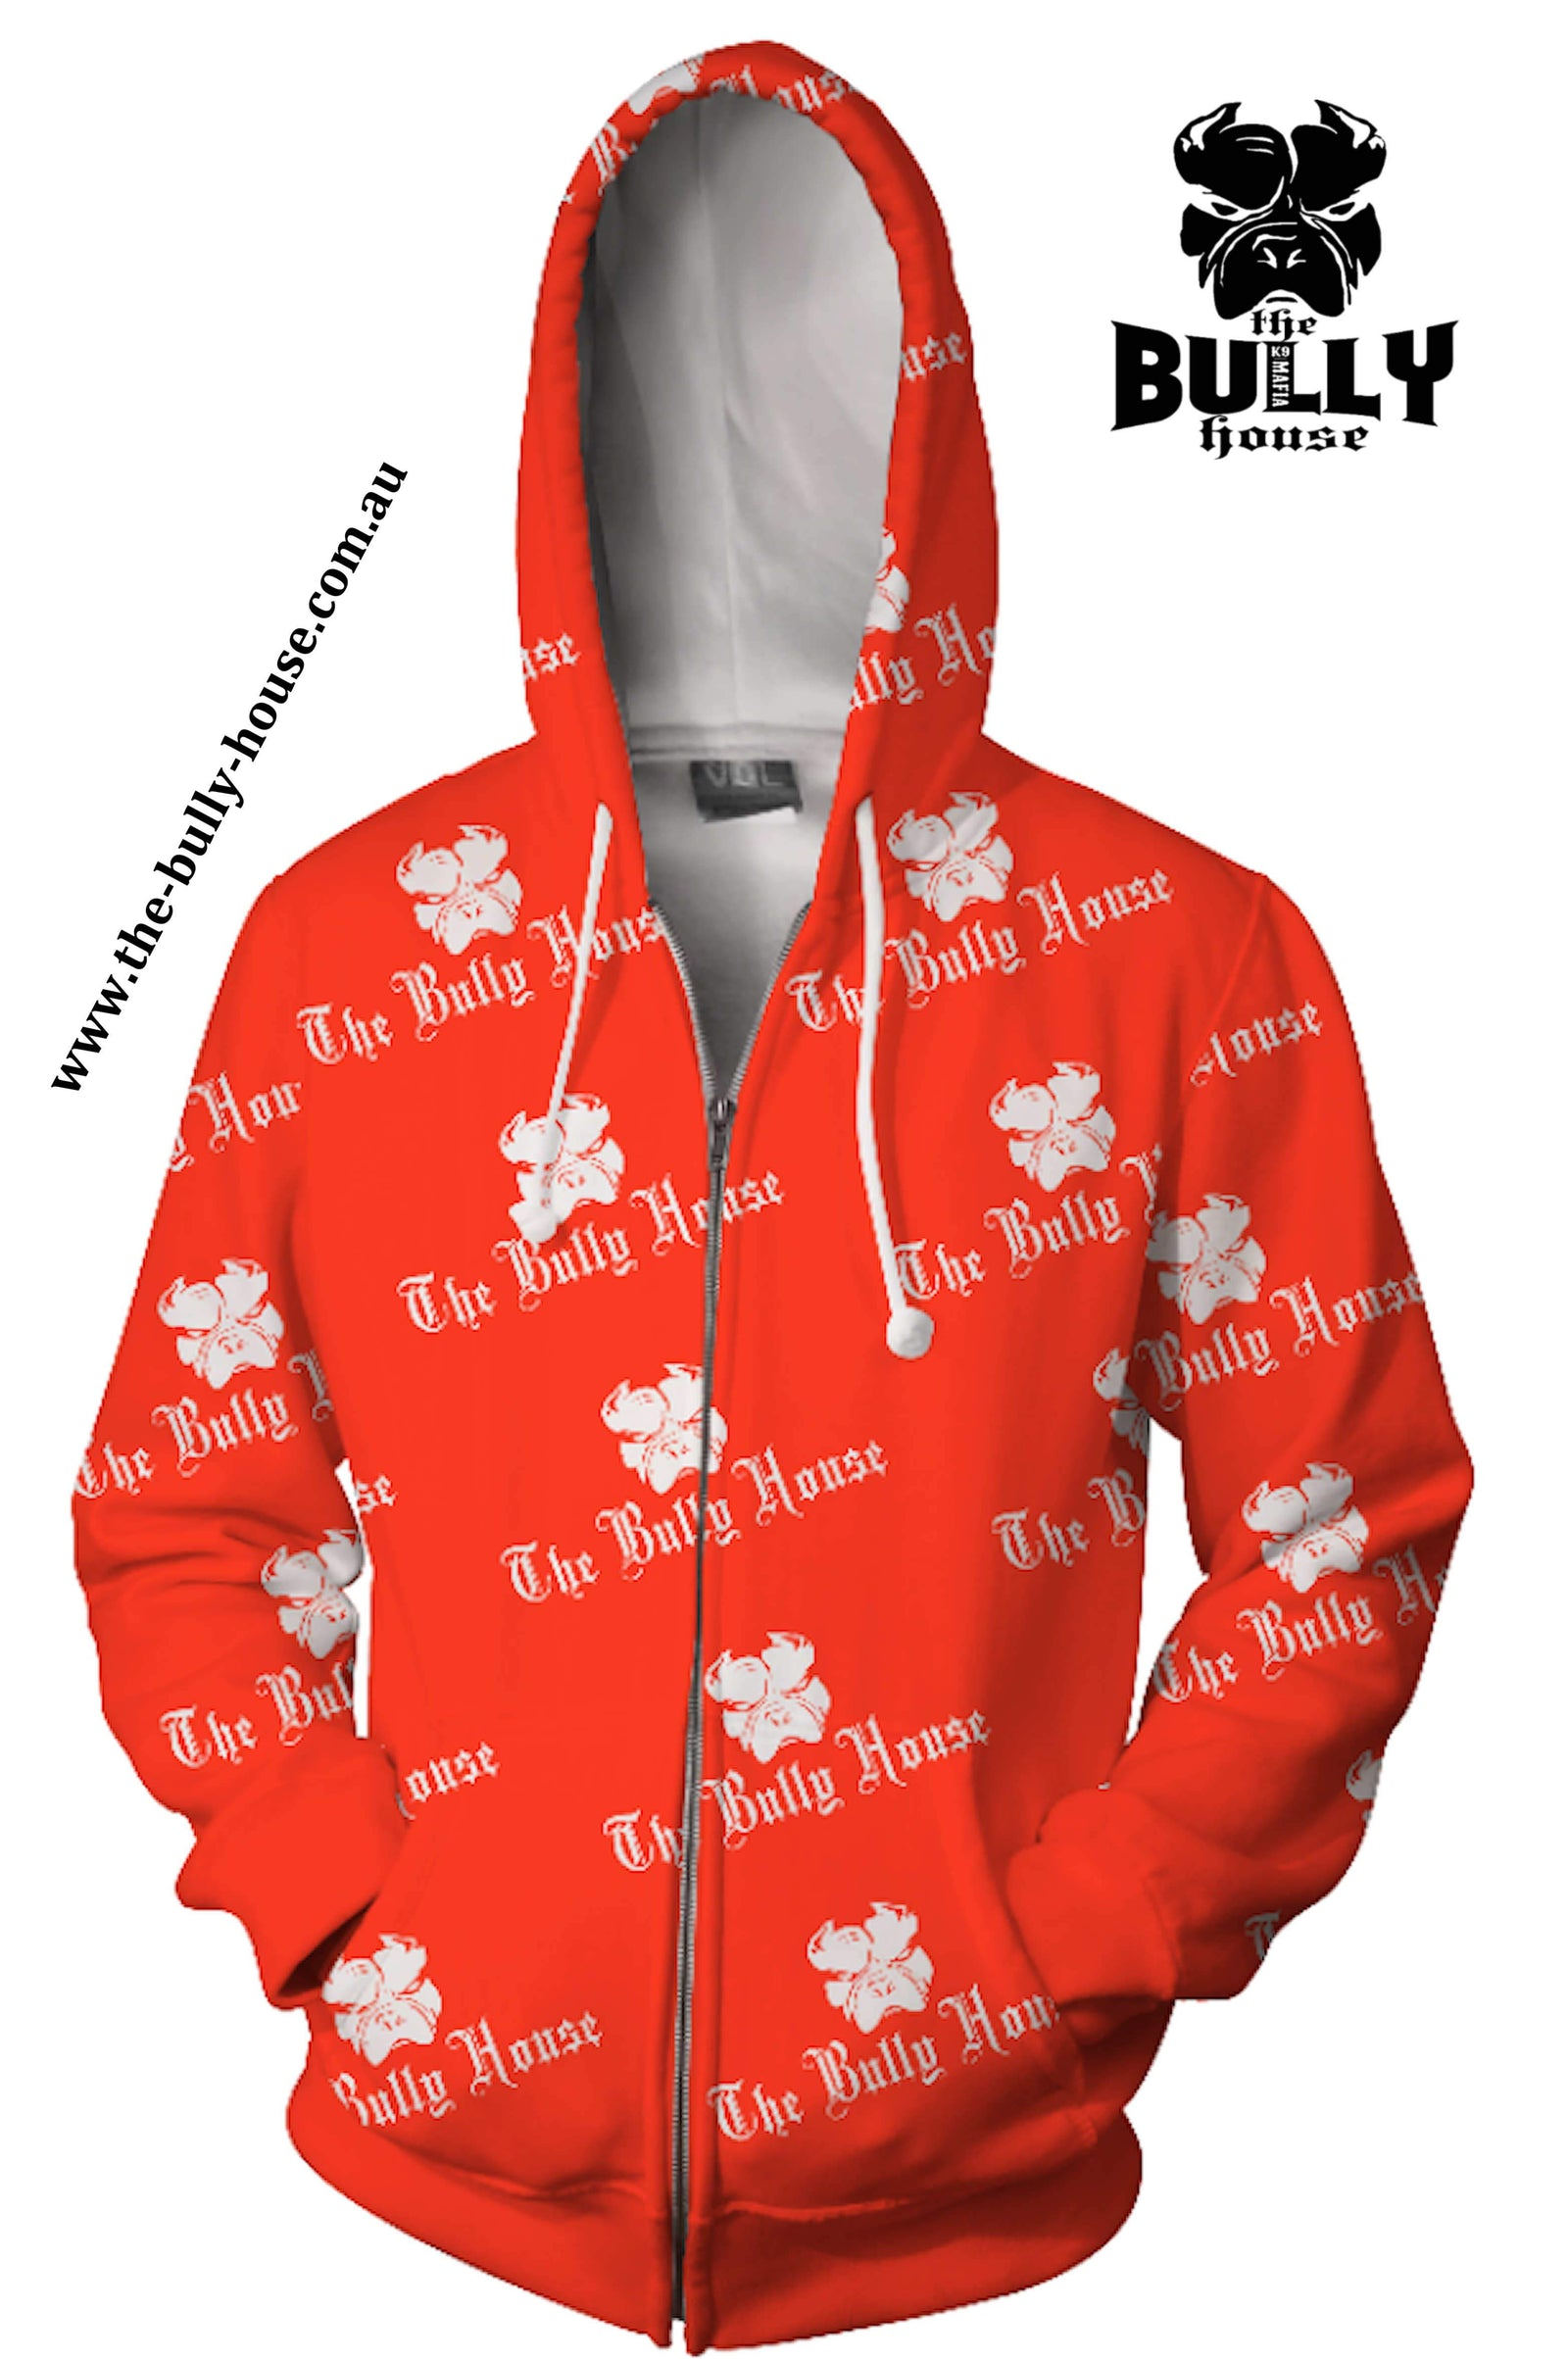 All Over Print - The Bully House -- HARDCORE Zip Up Hoodie -- (Unisex) RED / WHITE